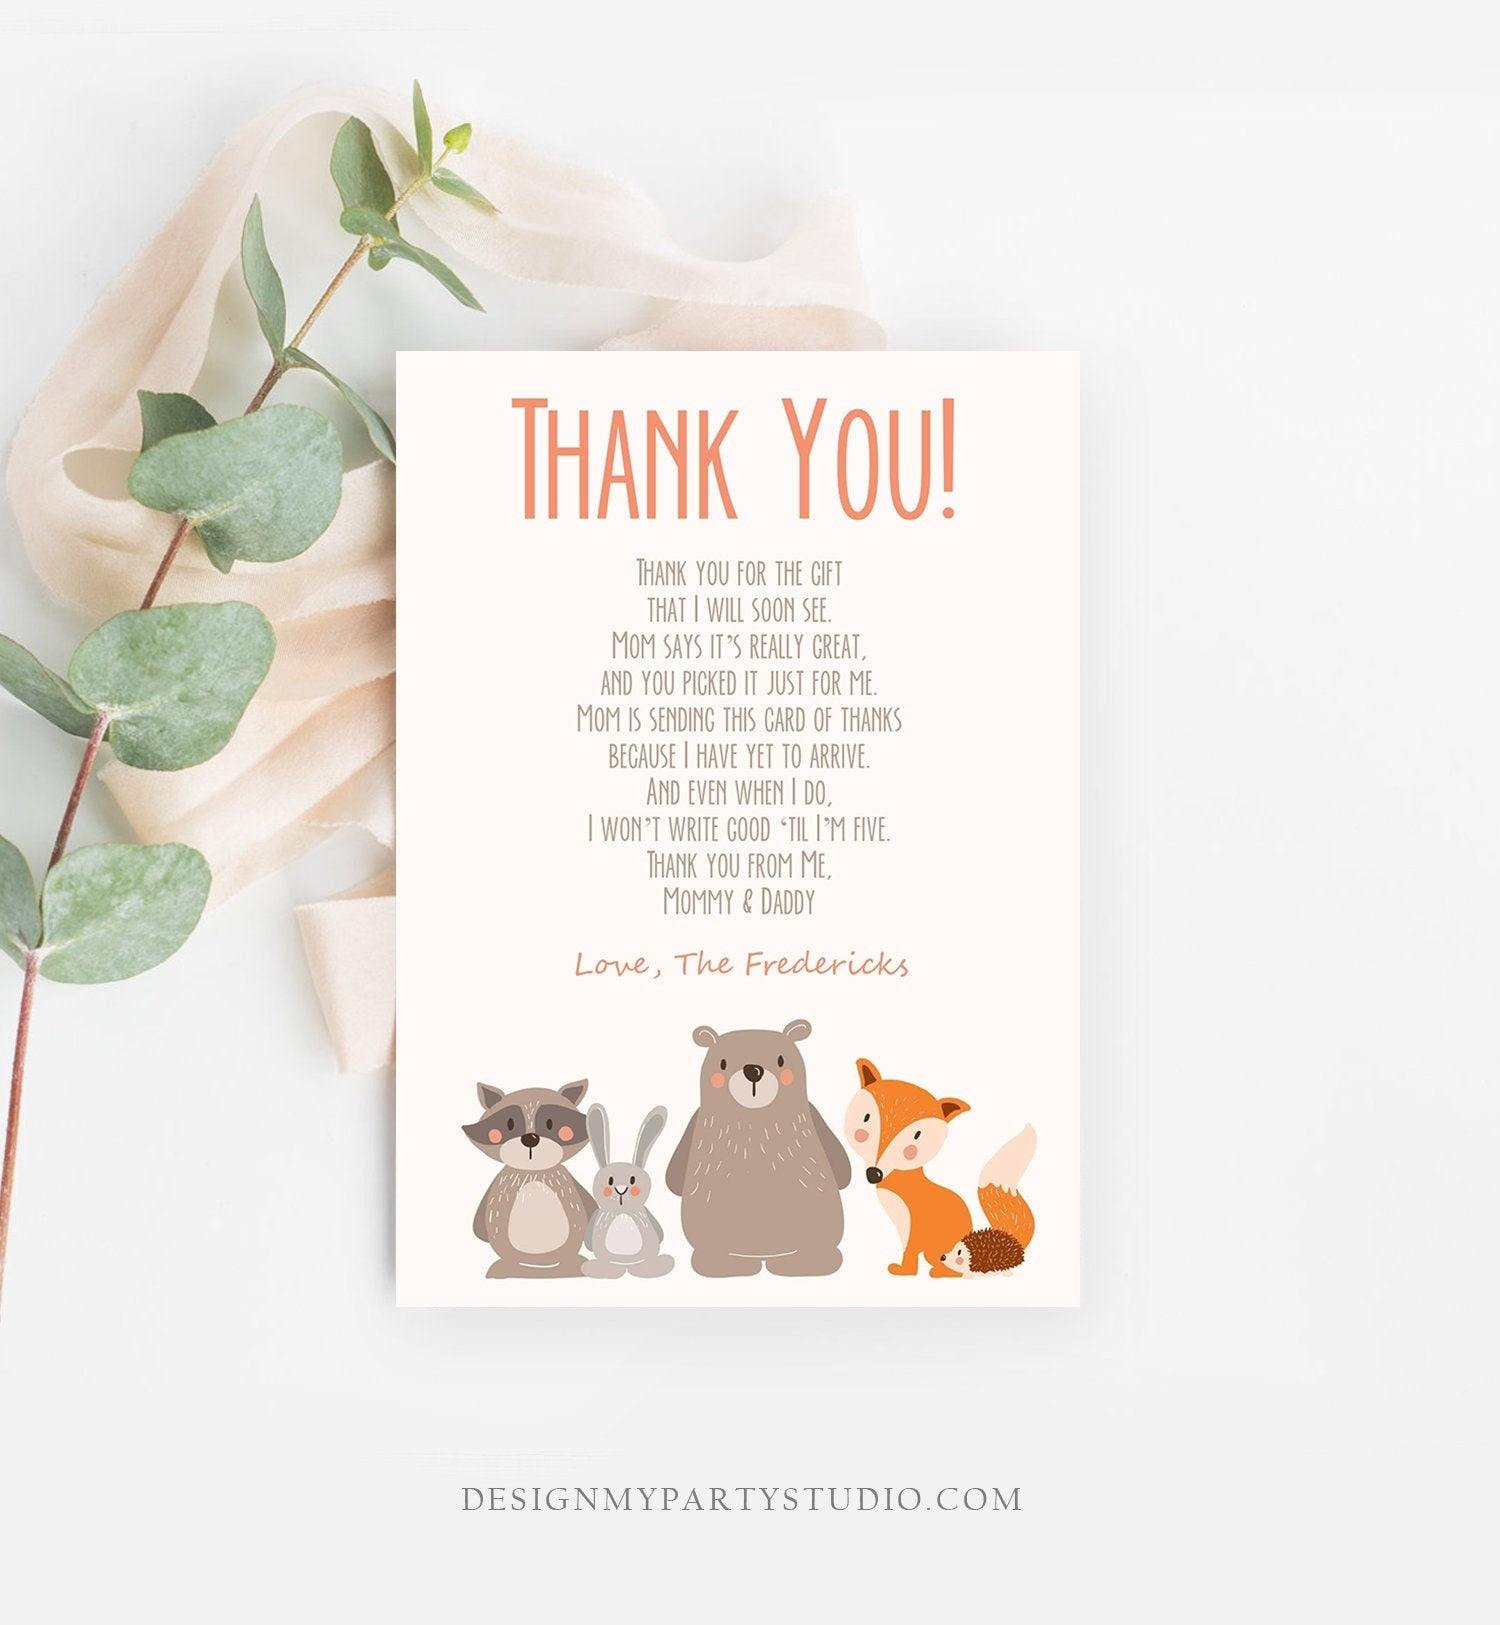 Editable Baby shower Thank you note Woodland Thank You Rustic Cute Animals Forest Gender Neutral Template Instant Download Corjl 0010